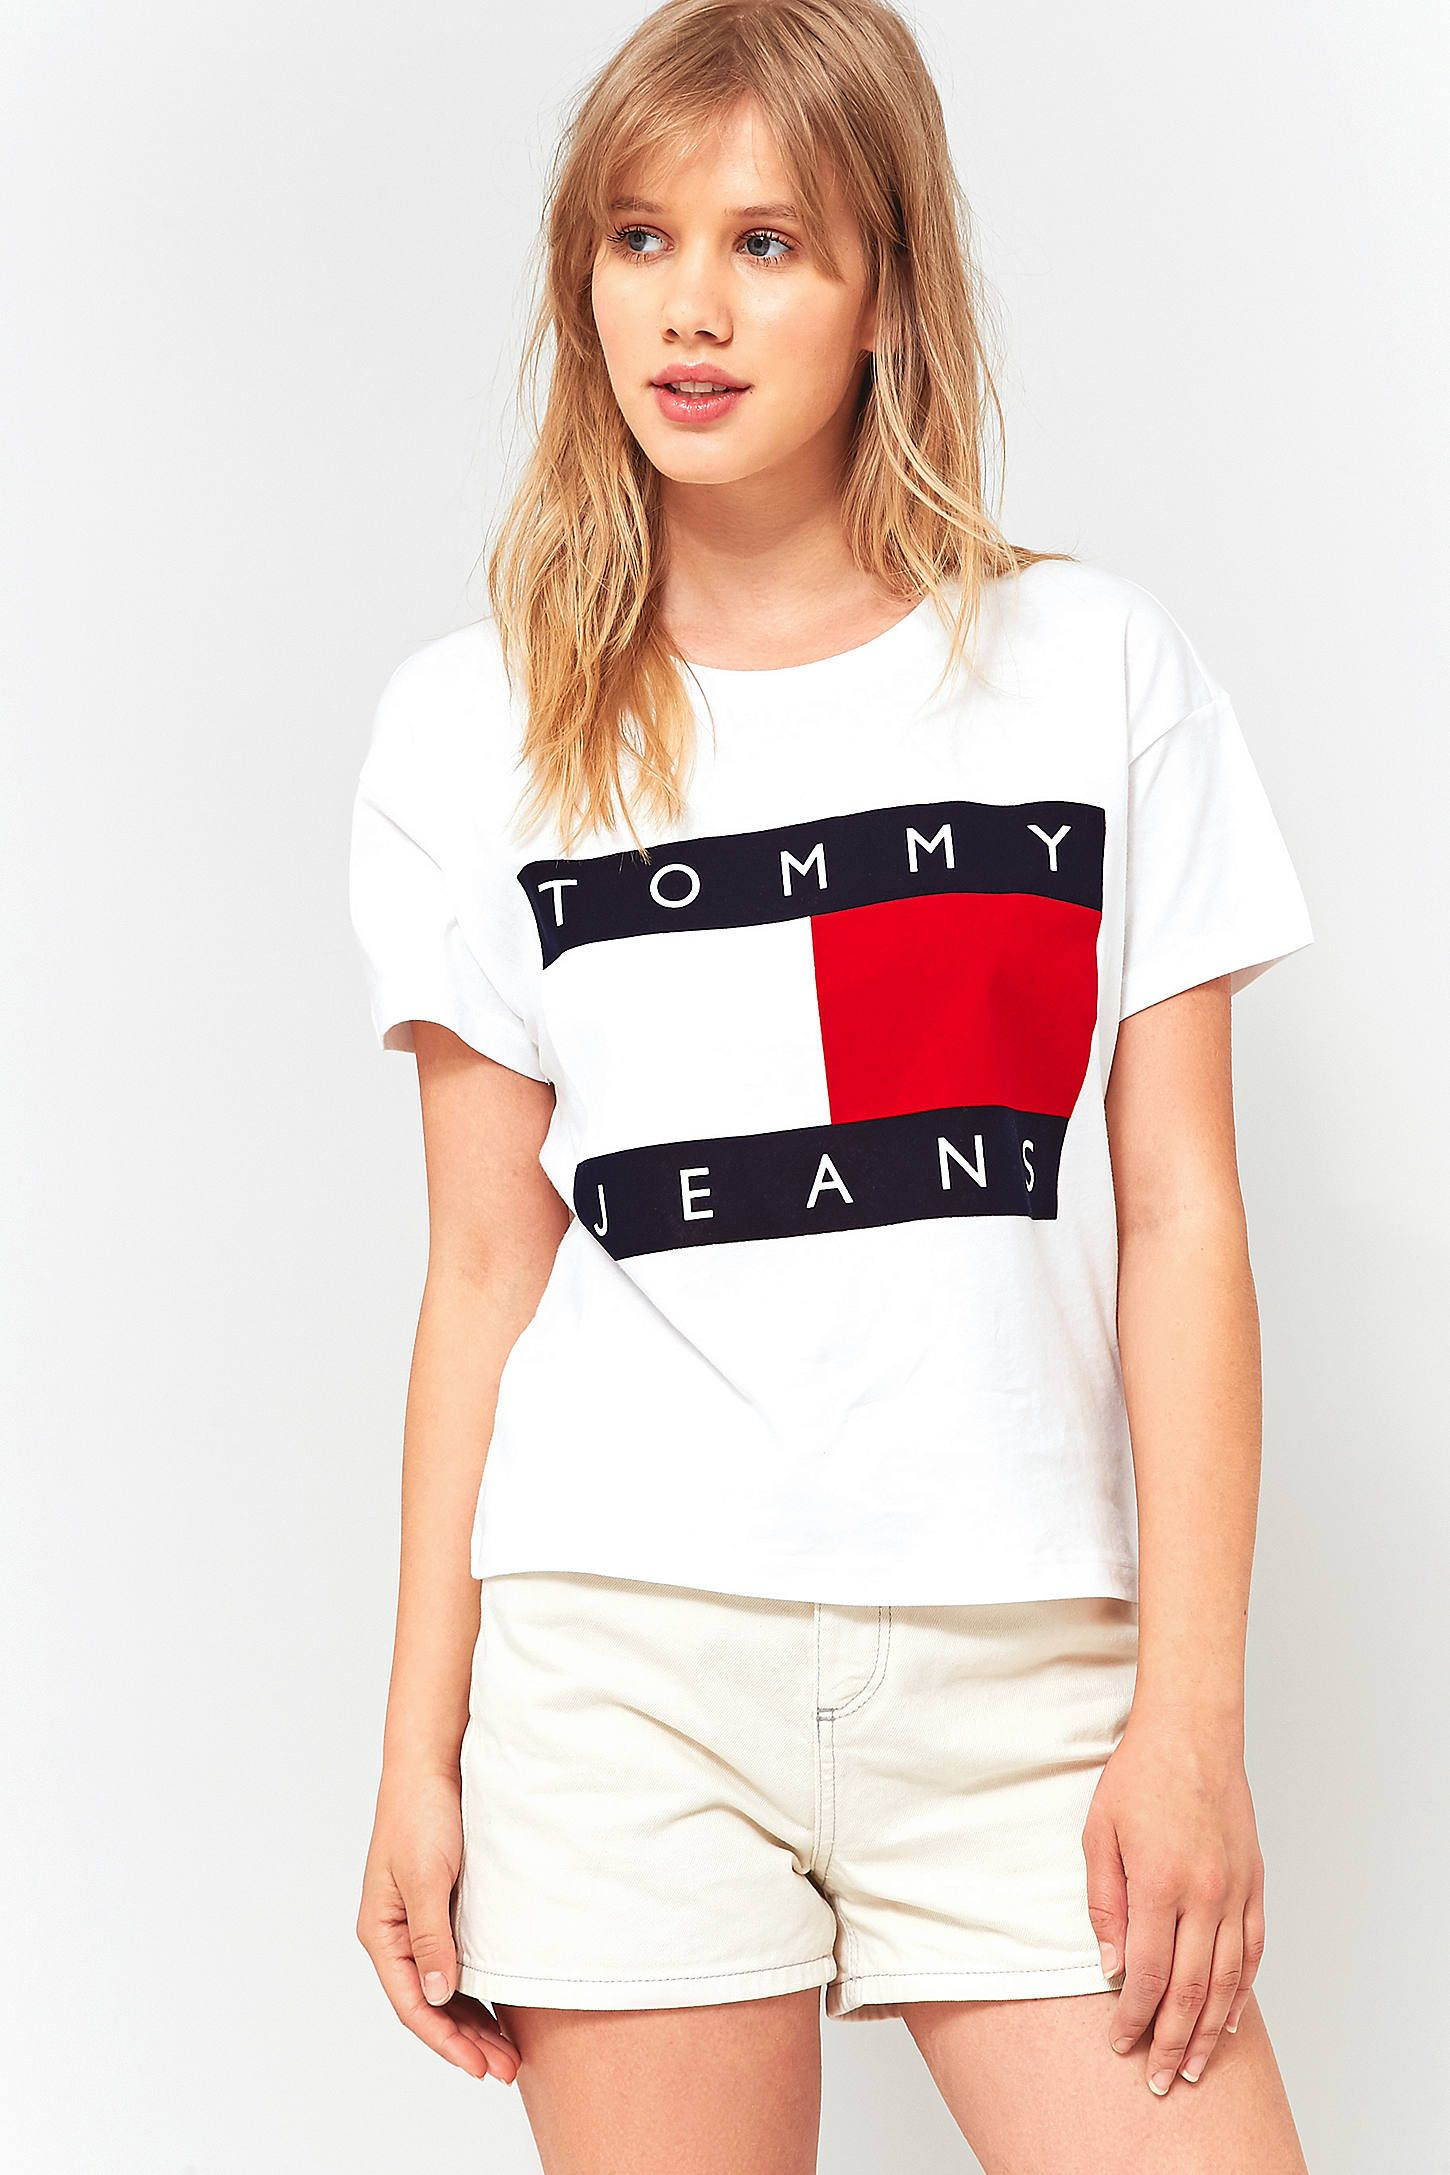 tommy hilfiger 39 90s white logo t shirt tommy hilfiger. Black Bedroom Furniture Sets. Home Design Ideas